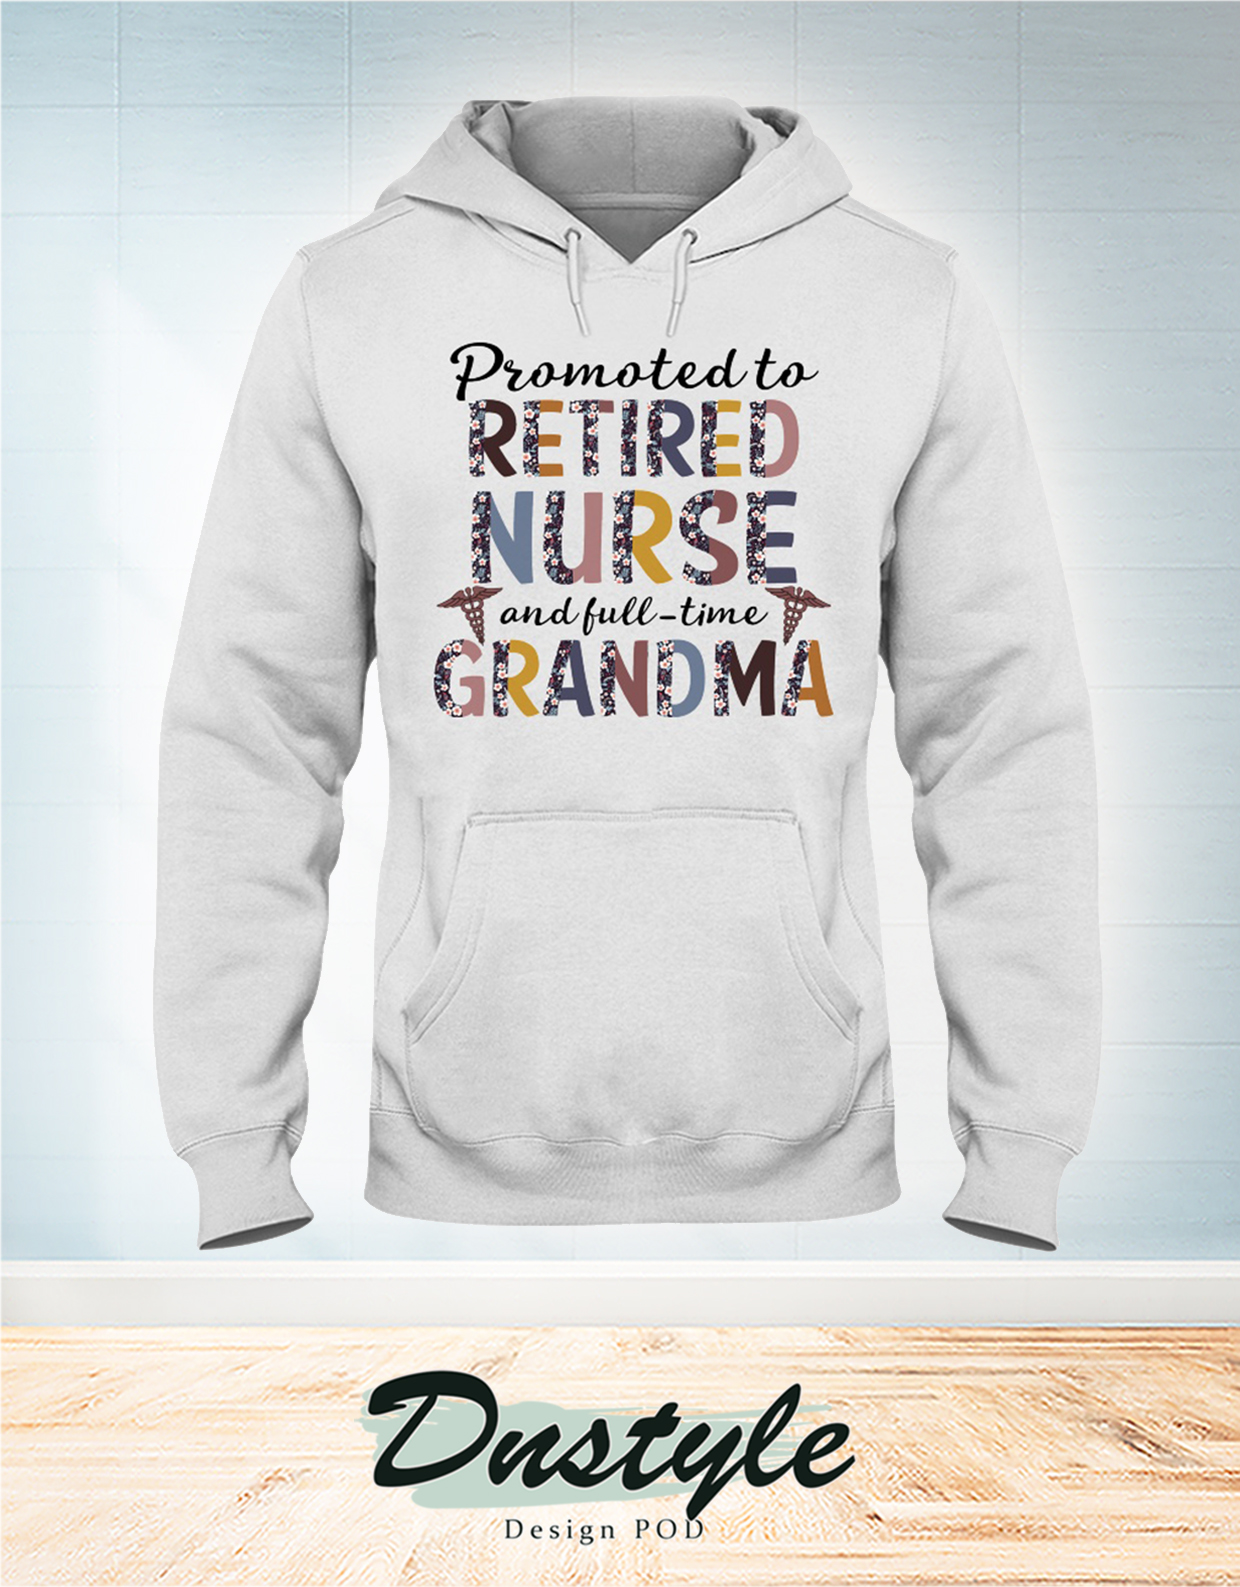 Promoted to retired nurse and full time grandma hoodie